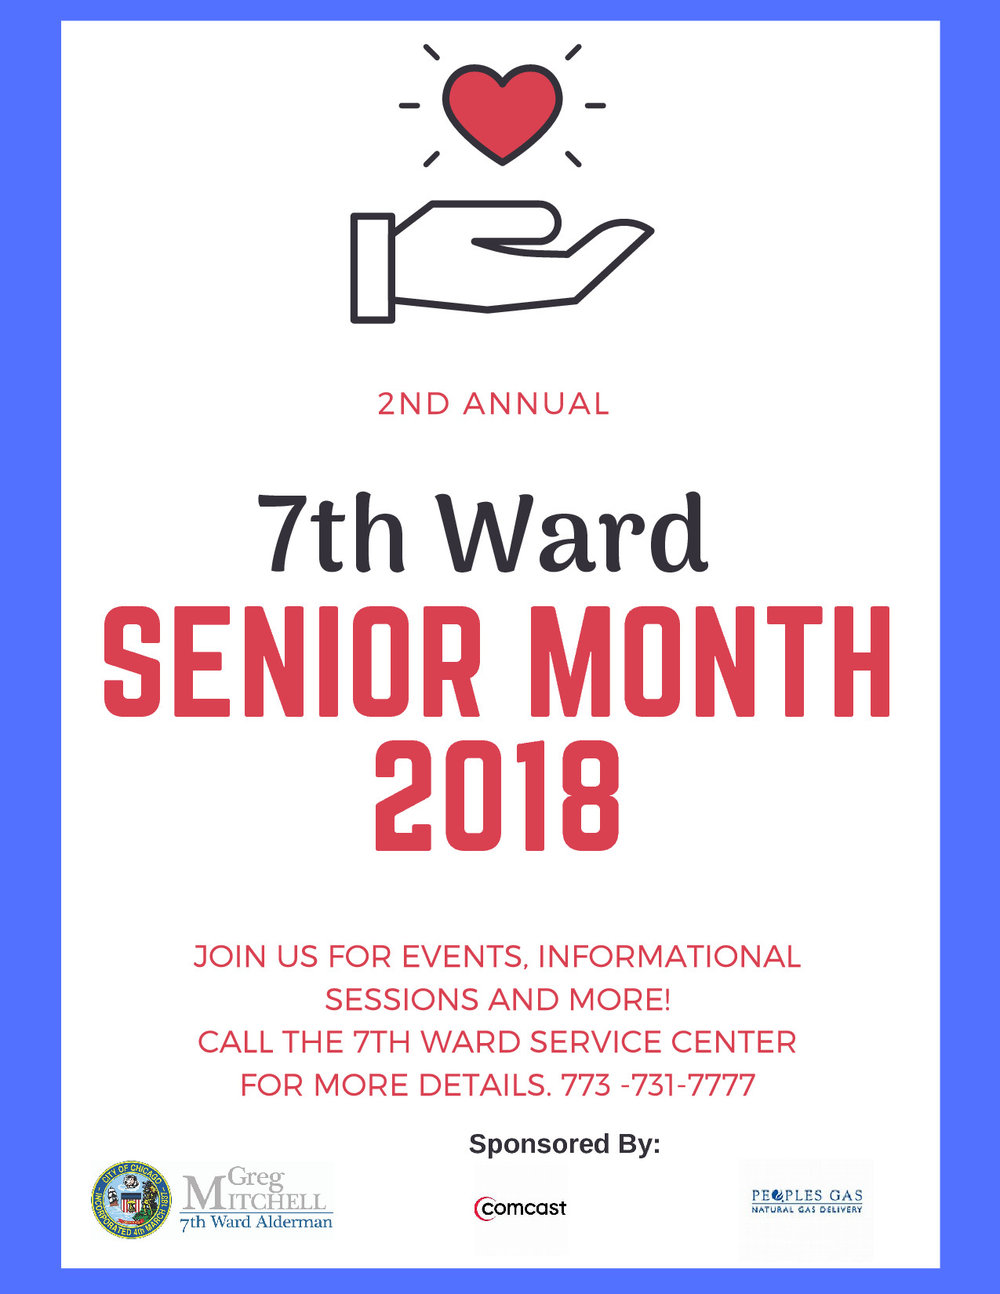 2nd annual 7th ward senior month a.jpg